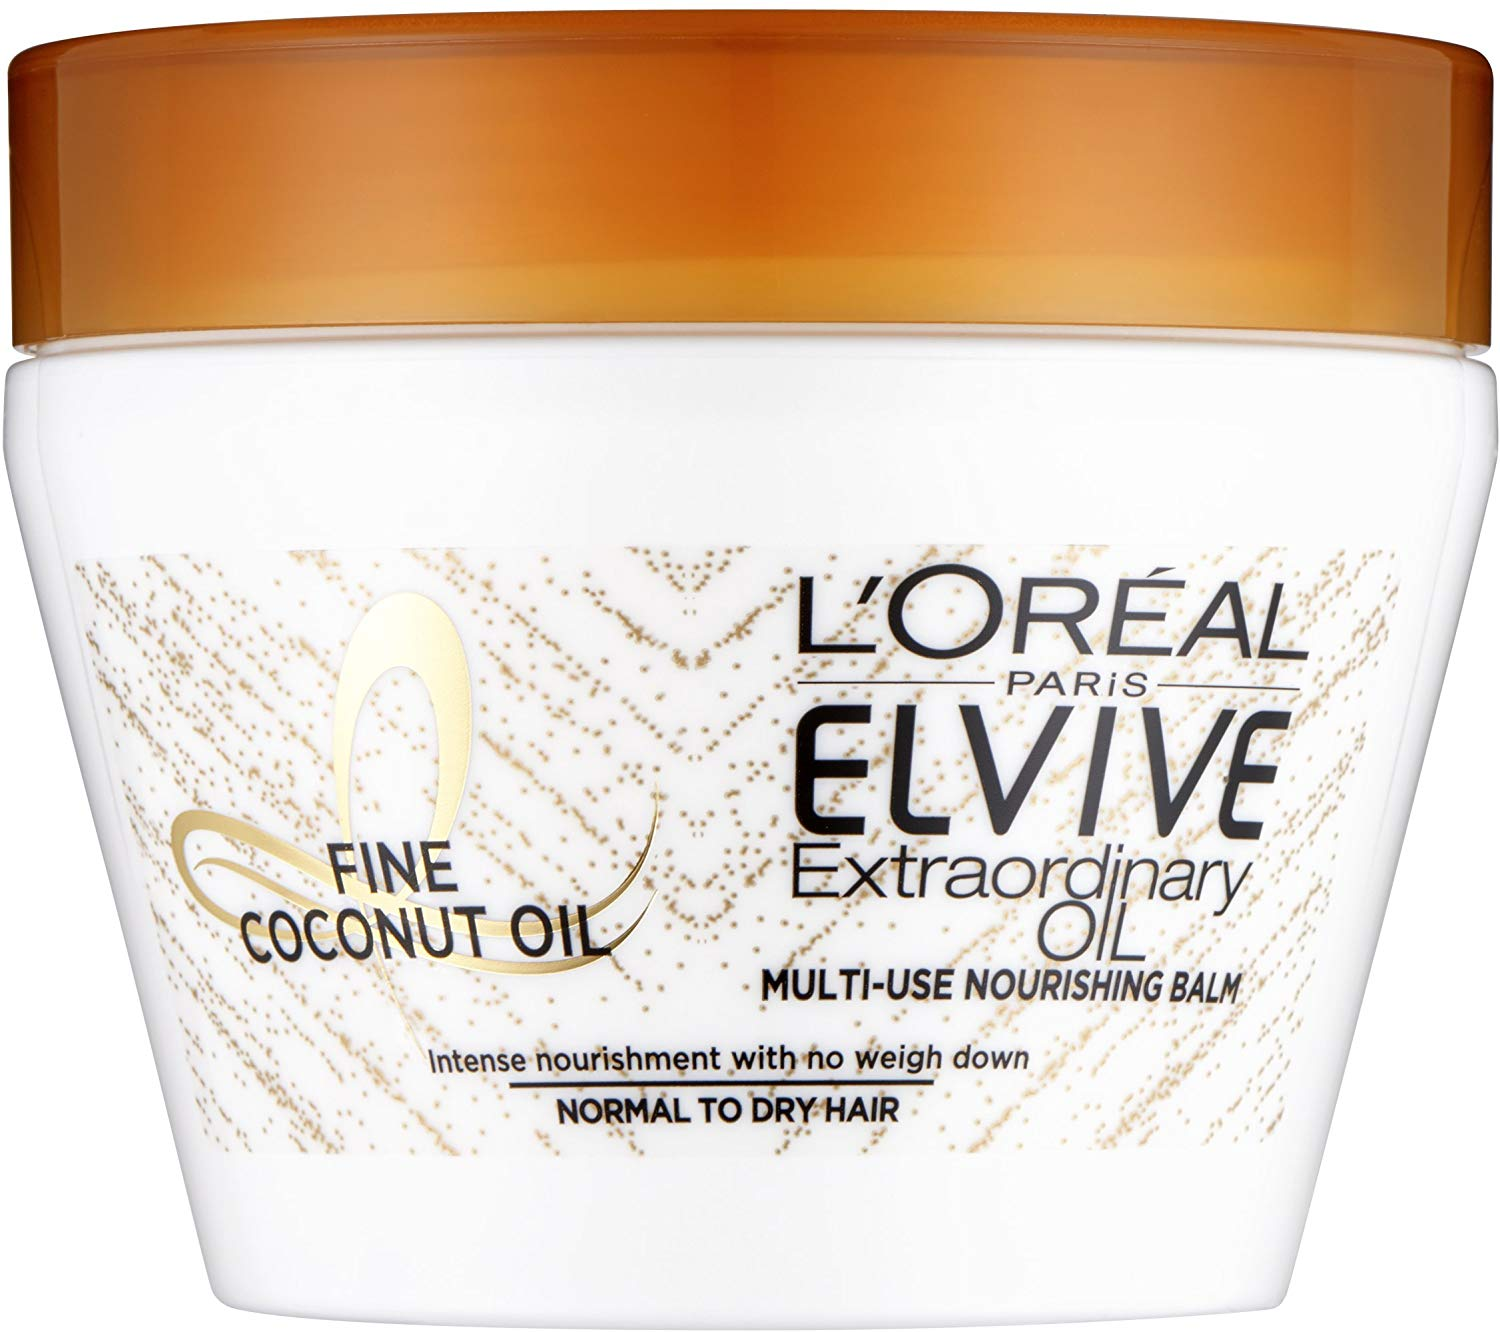 L'Oreal Elvive Extraordinary Oil Coconut Hair Mask, 300 ml for £2.54 Prime Only